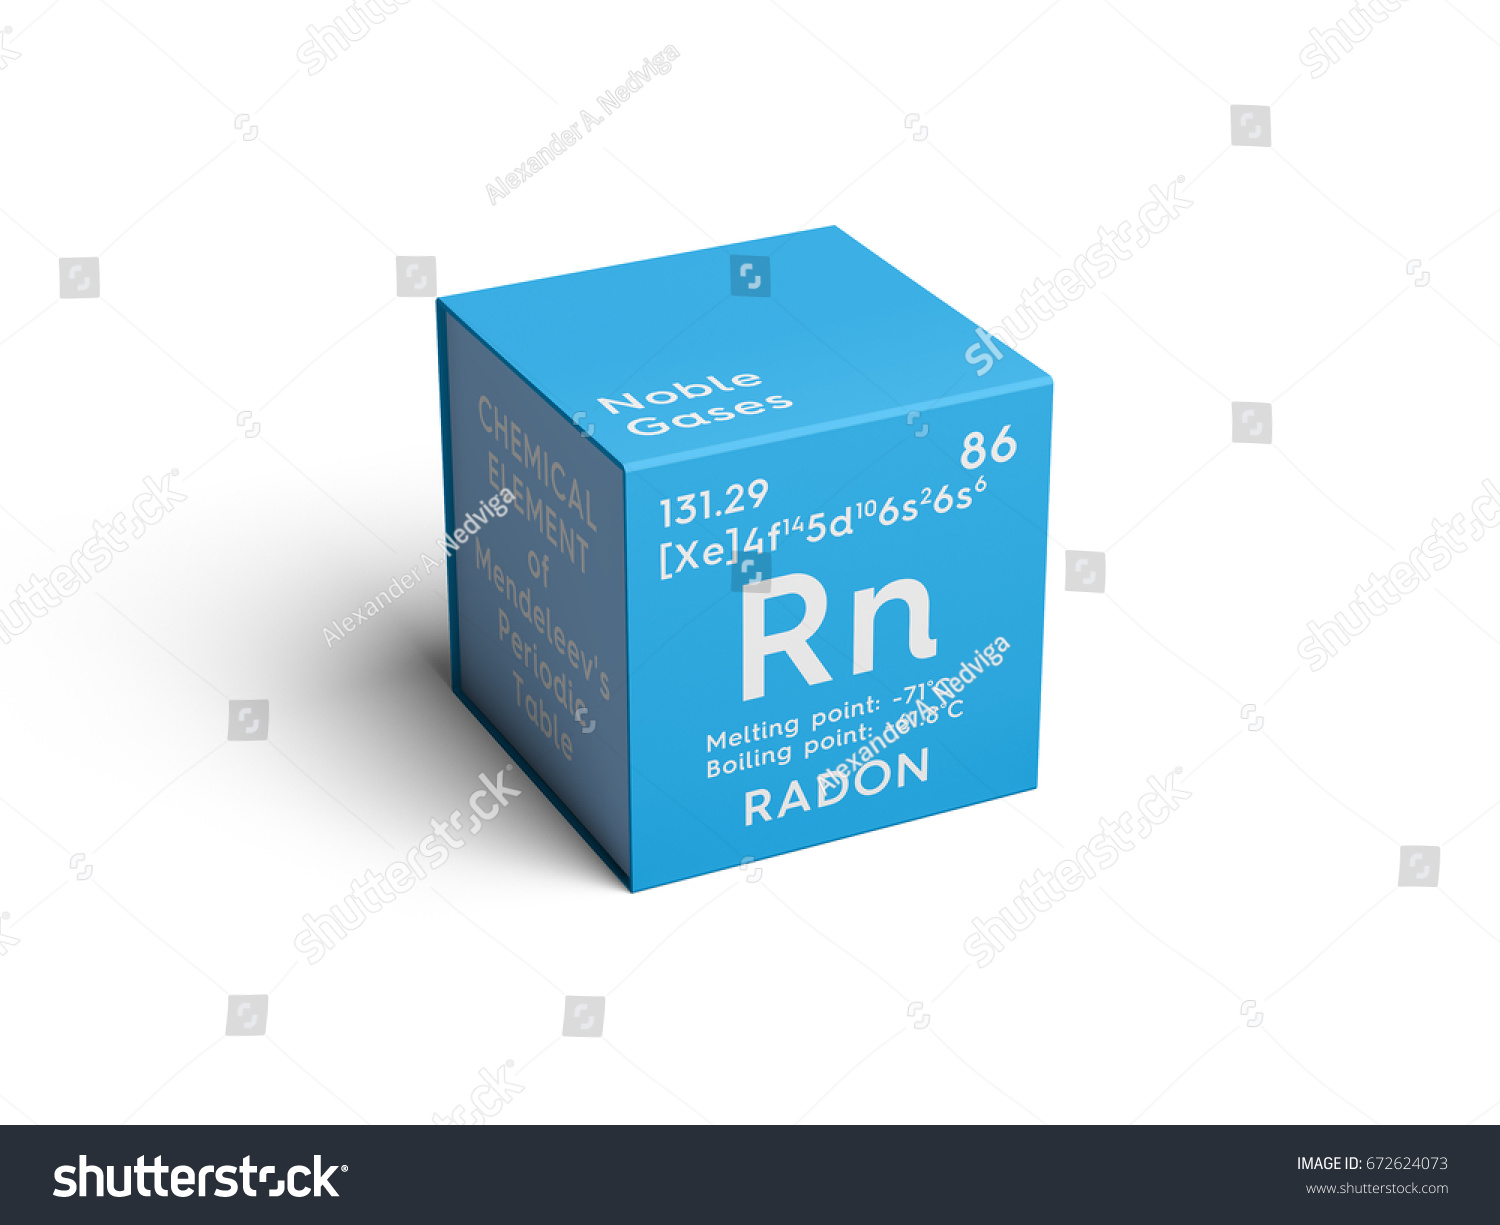 Periodic table radon gallery periodic table images radon noble gases chemical element mendeleevs stock illustration radon noble gases chemical element of mendeleevs periodic gamestrikefo Image collections